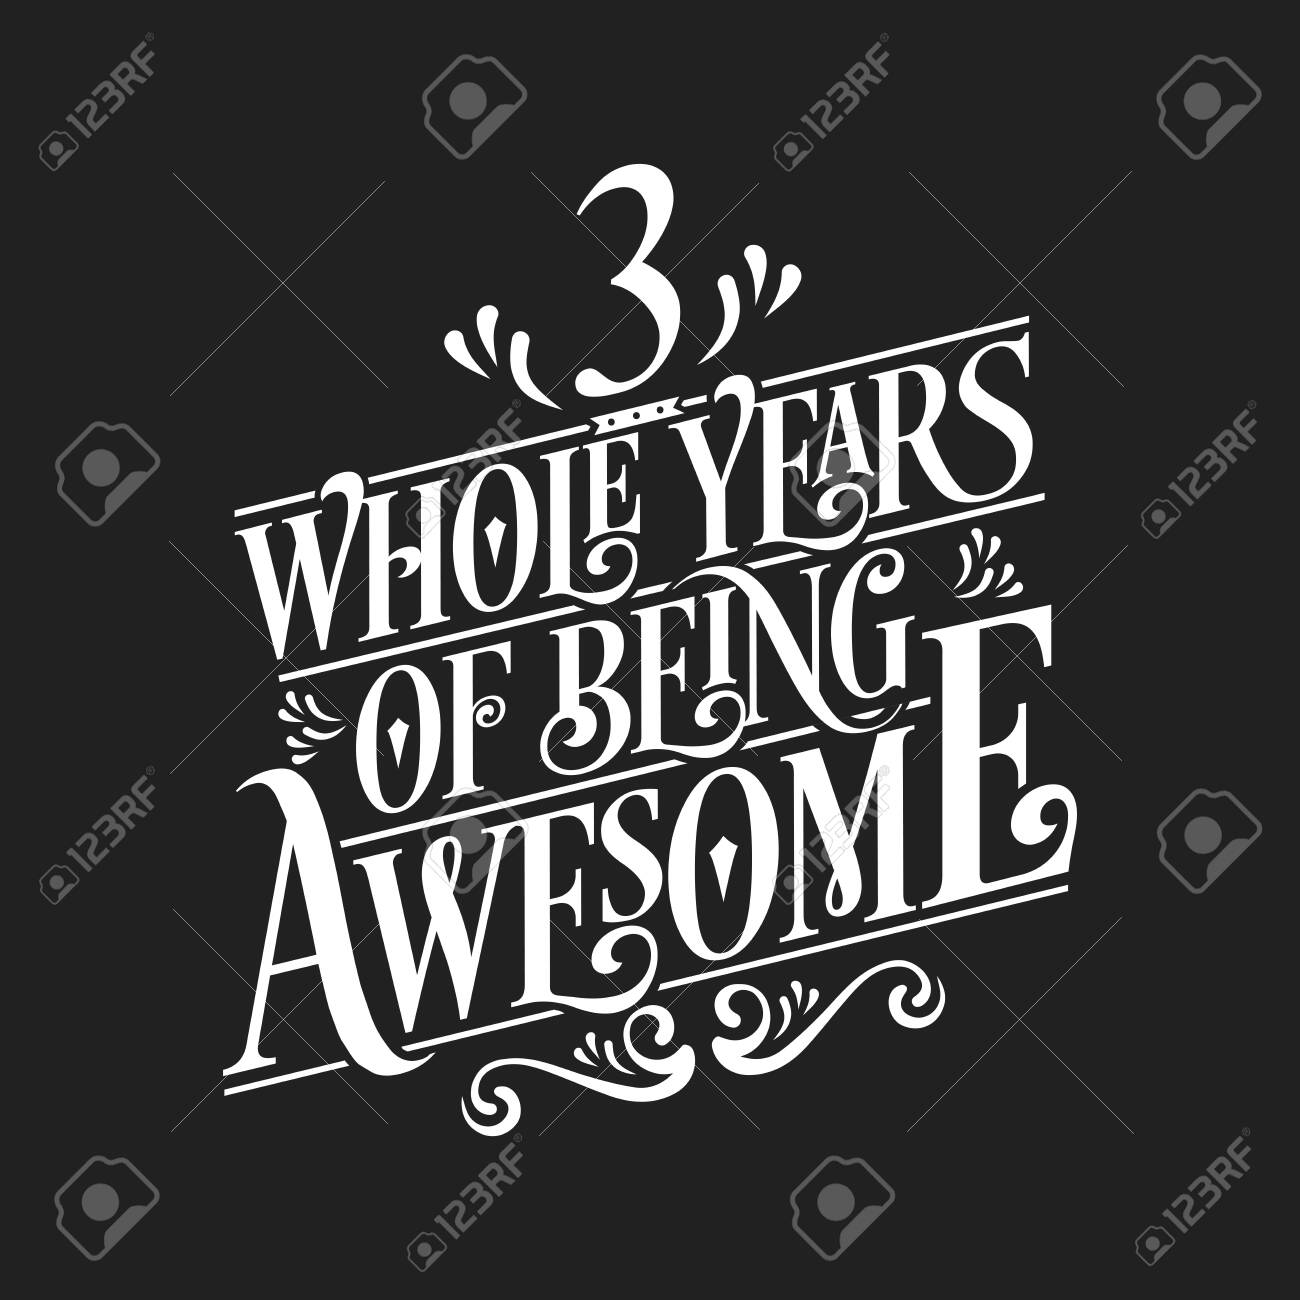 3 Years Birthday And 3 Years Wedding Anniversary Typography Design Royalty Free Cliparts Vectors And Stock Illustration Image 141187620